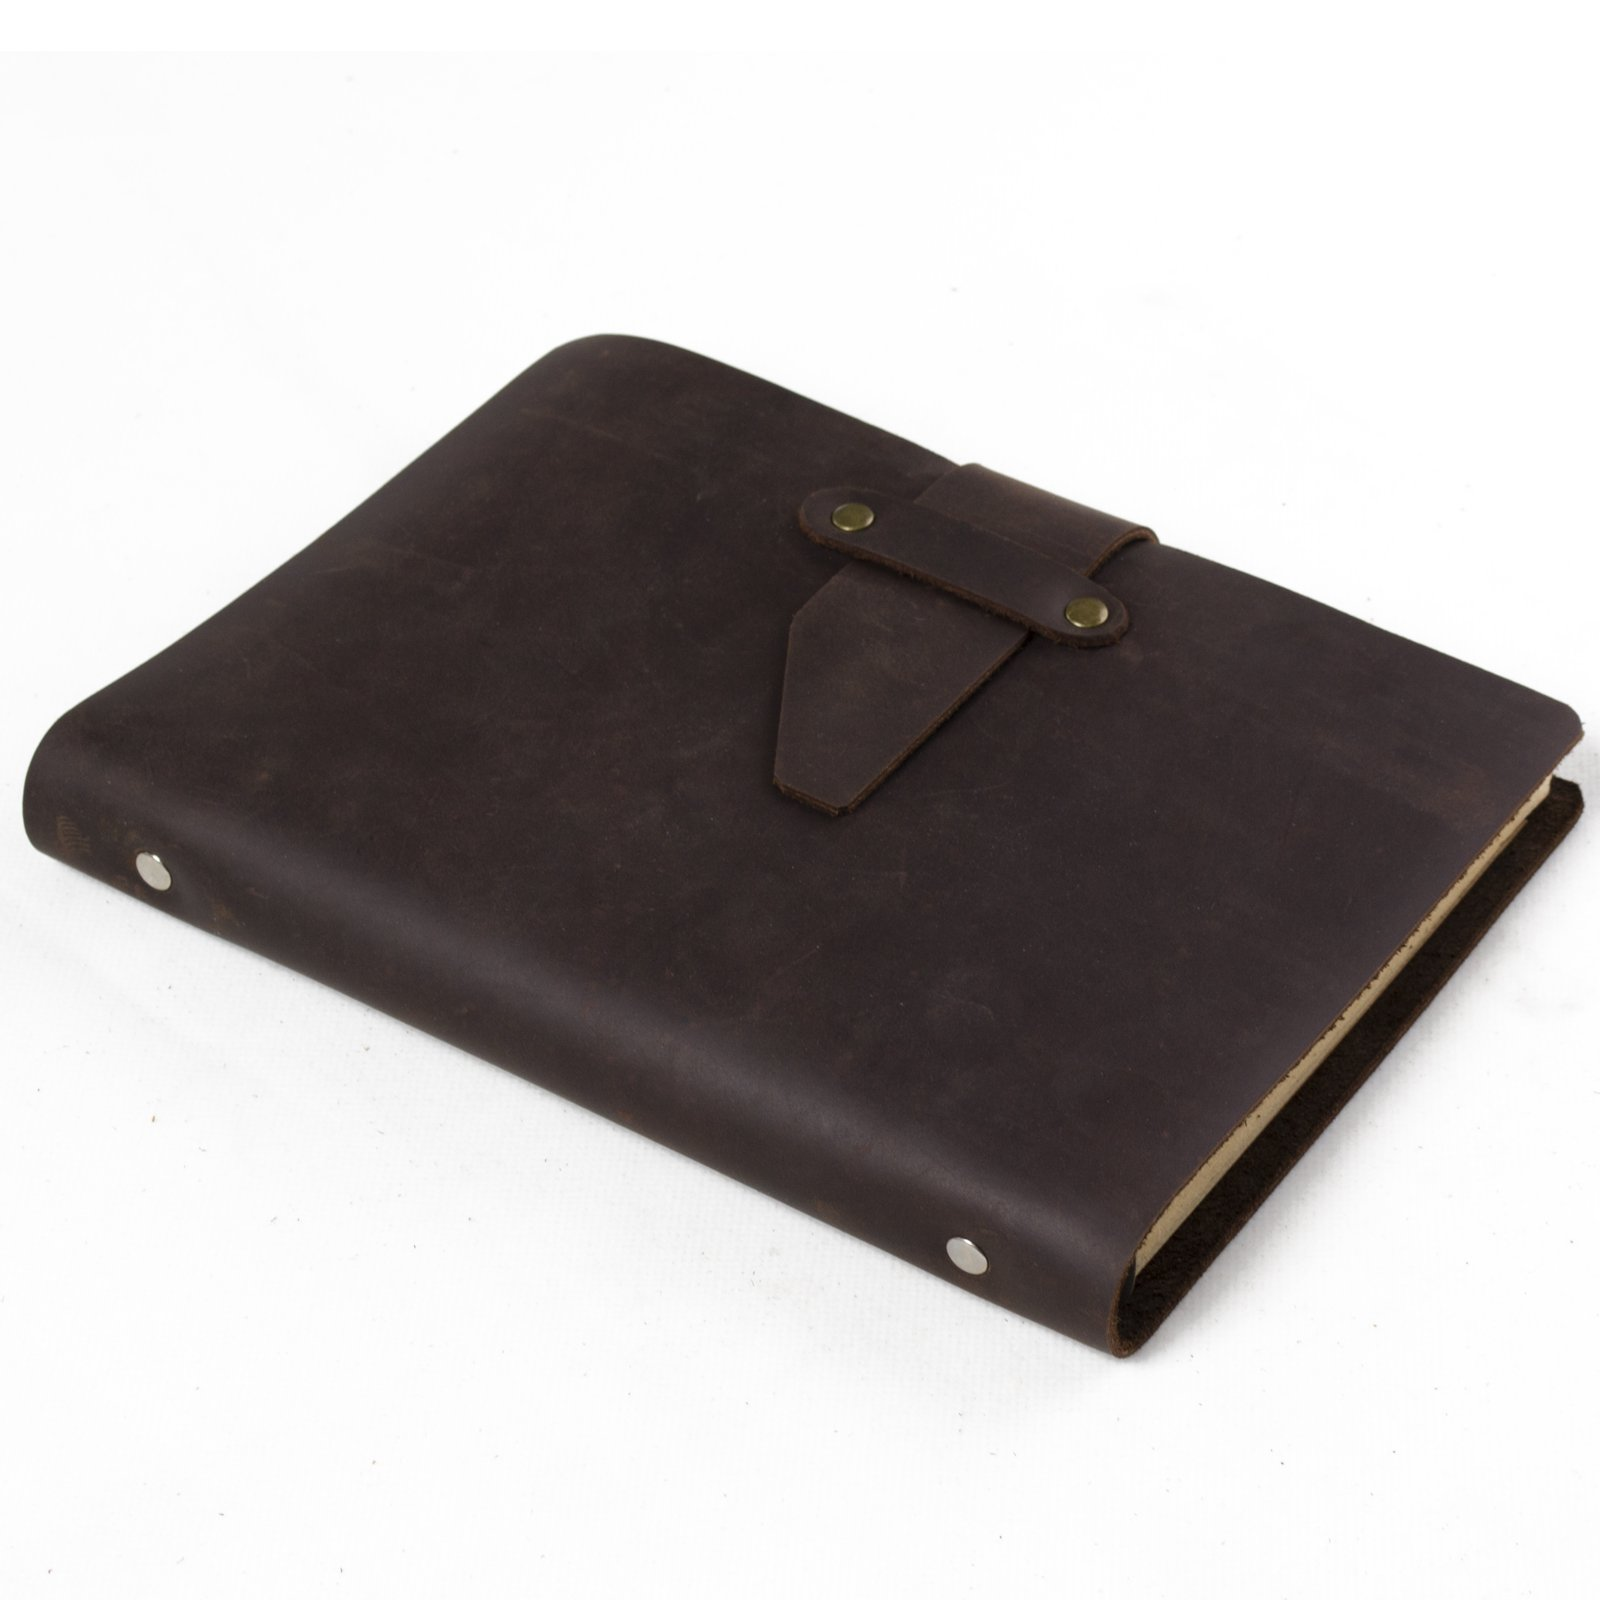 Simple Classic Leather Journal Refillable with Strap Loose Leaf Binder Lined Craft Paper A5 with Gift Box (Dark brown)